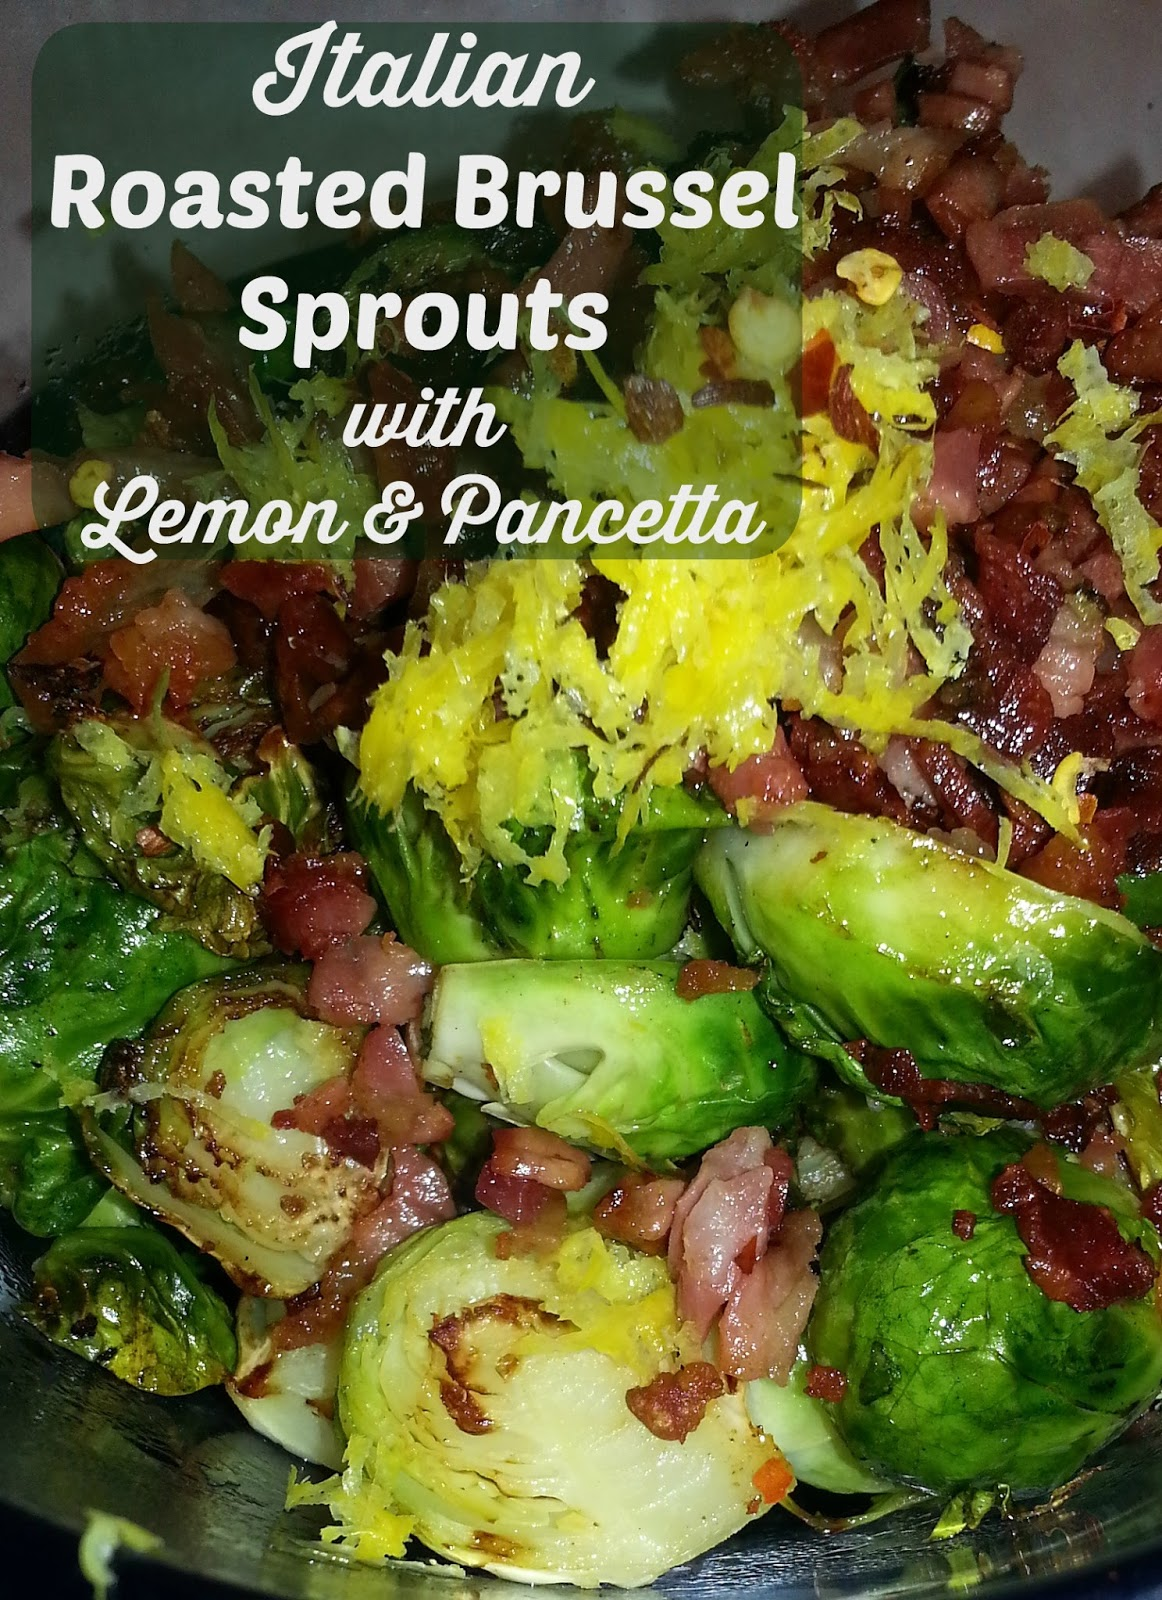 ... Love of Food: Italian Roasted Brussel Sprouts with Lemon and Pancetta